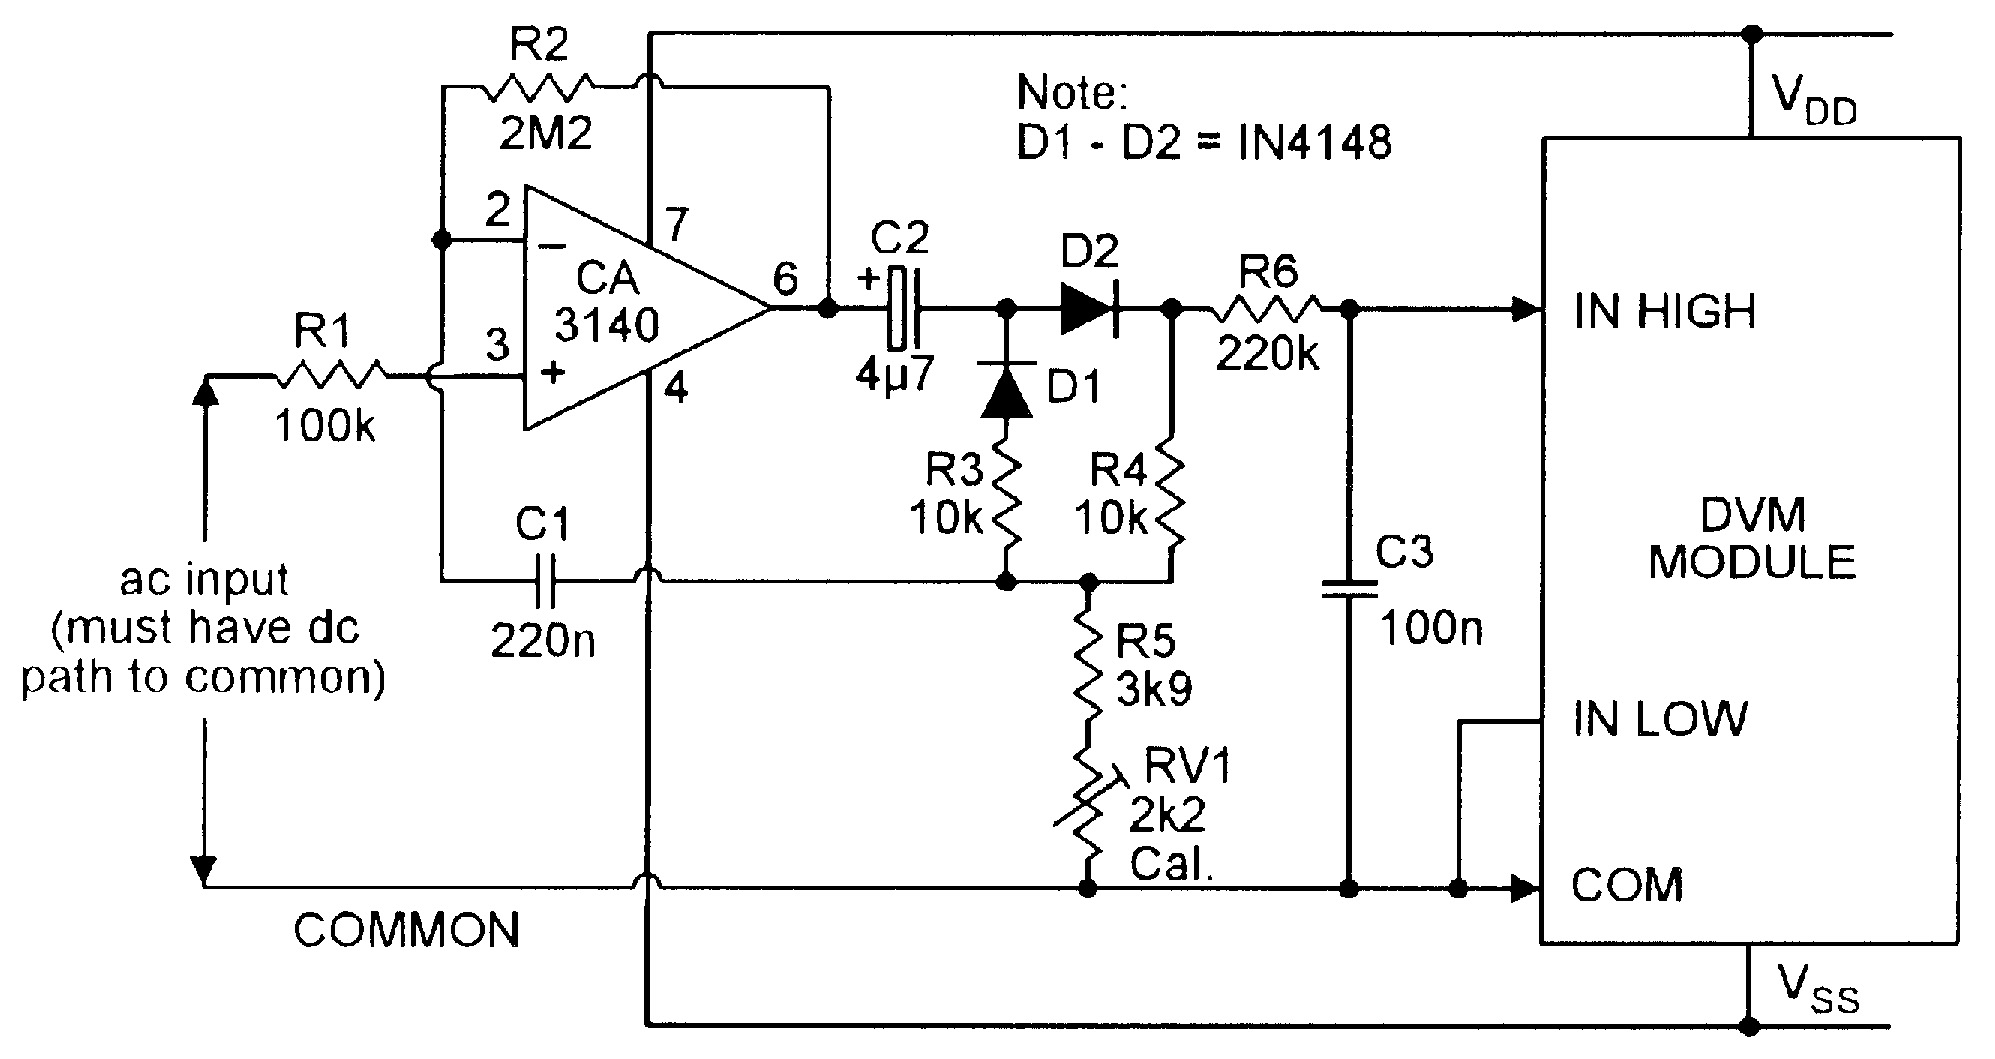 Op Amp Cookbook Part 4 Nuts Volts Magazine Circuit Diagram With Ammeter Figure 7 Ac Dc Converter For Use Dvm Module